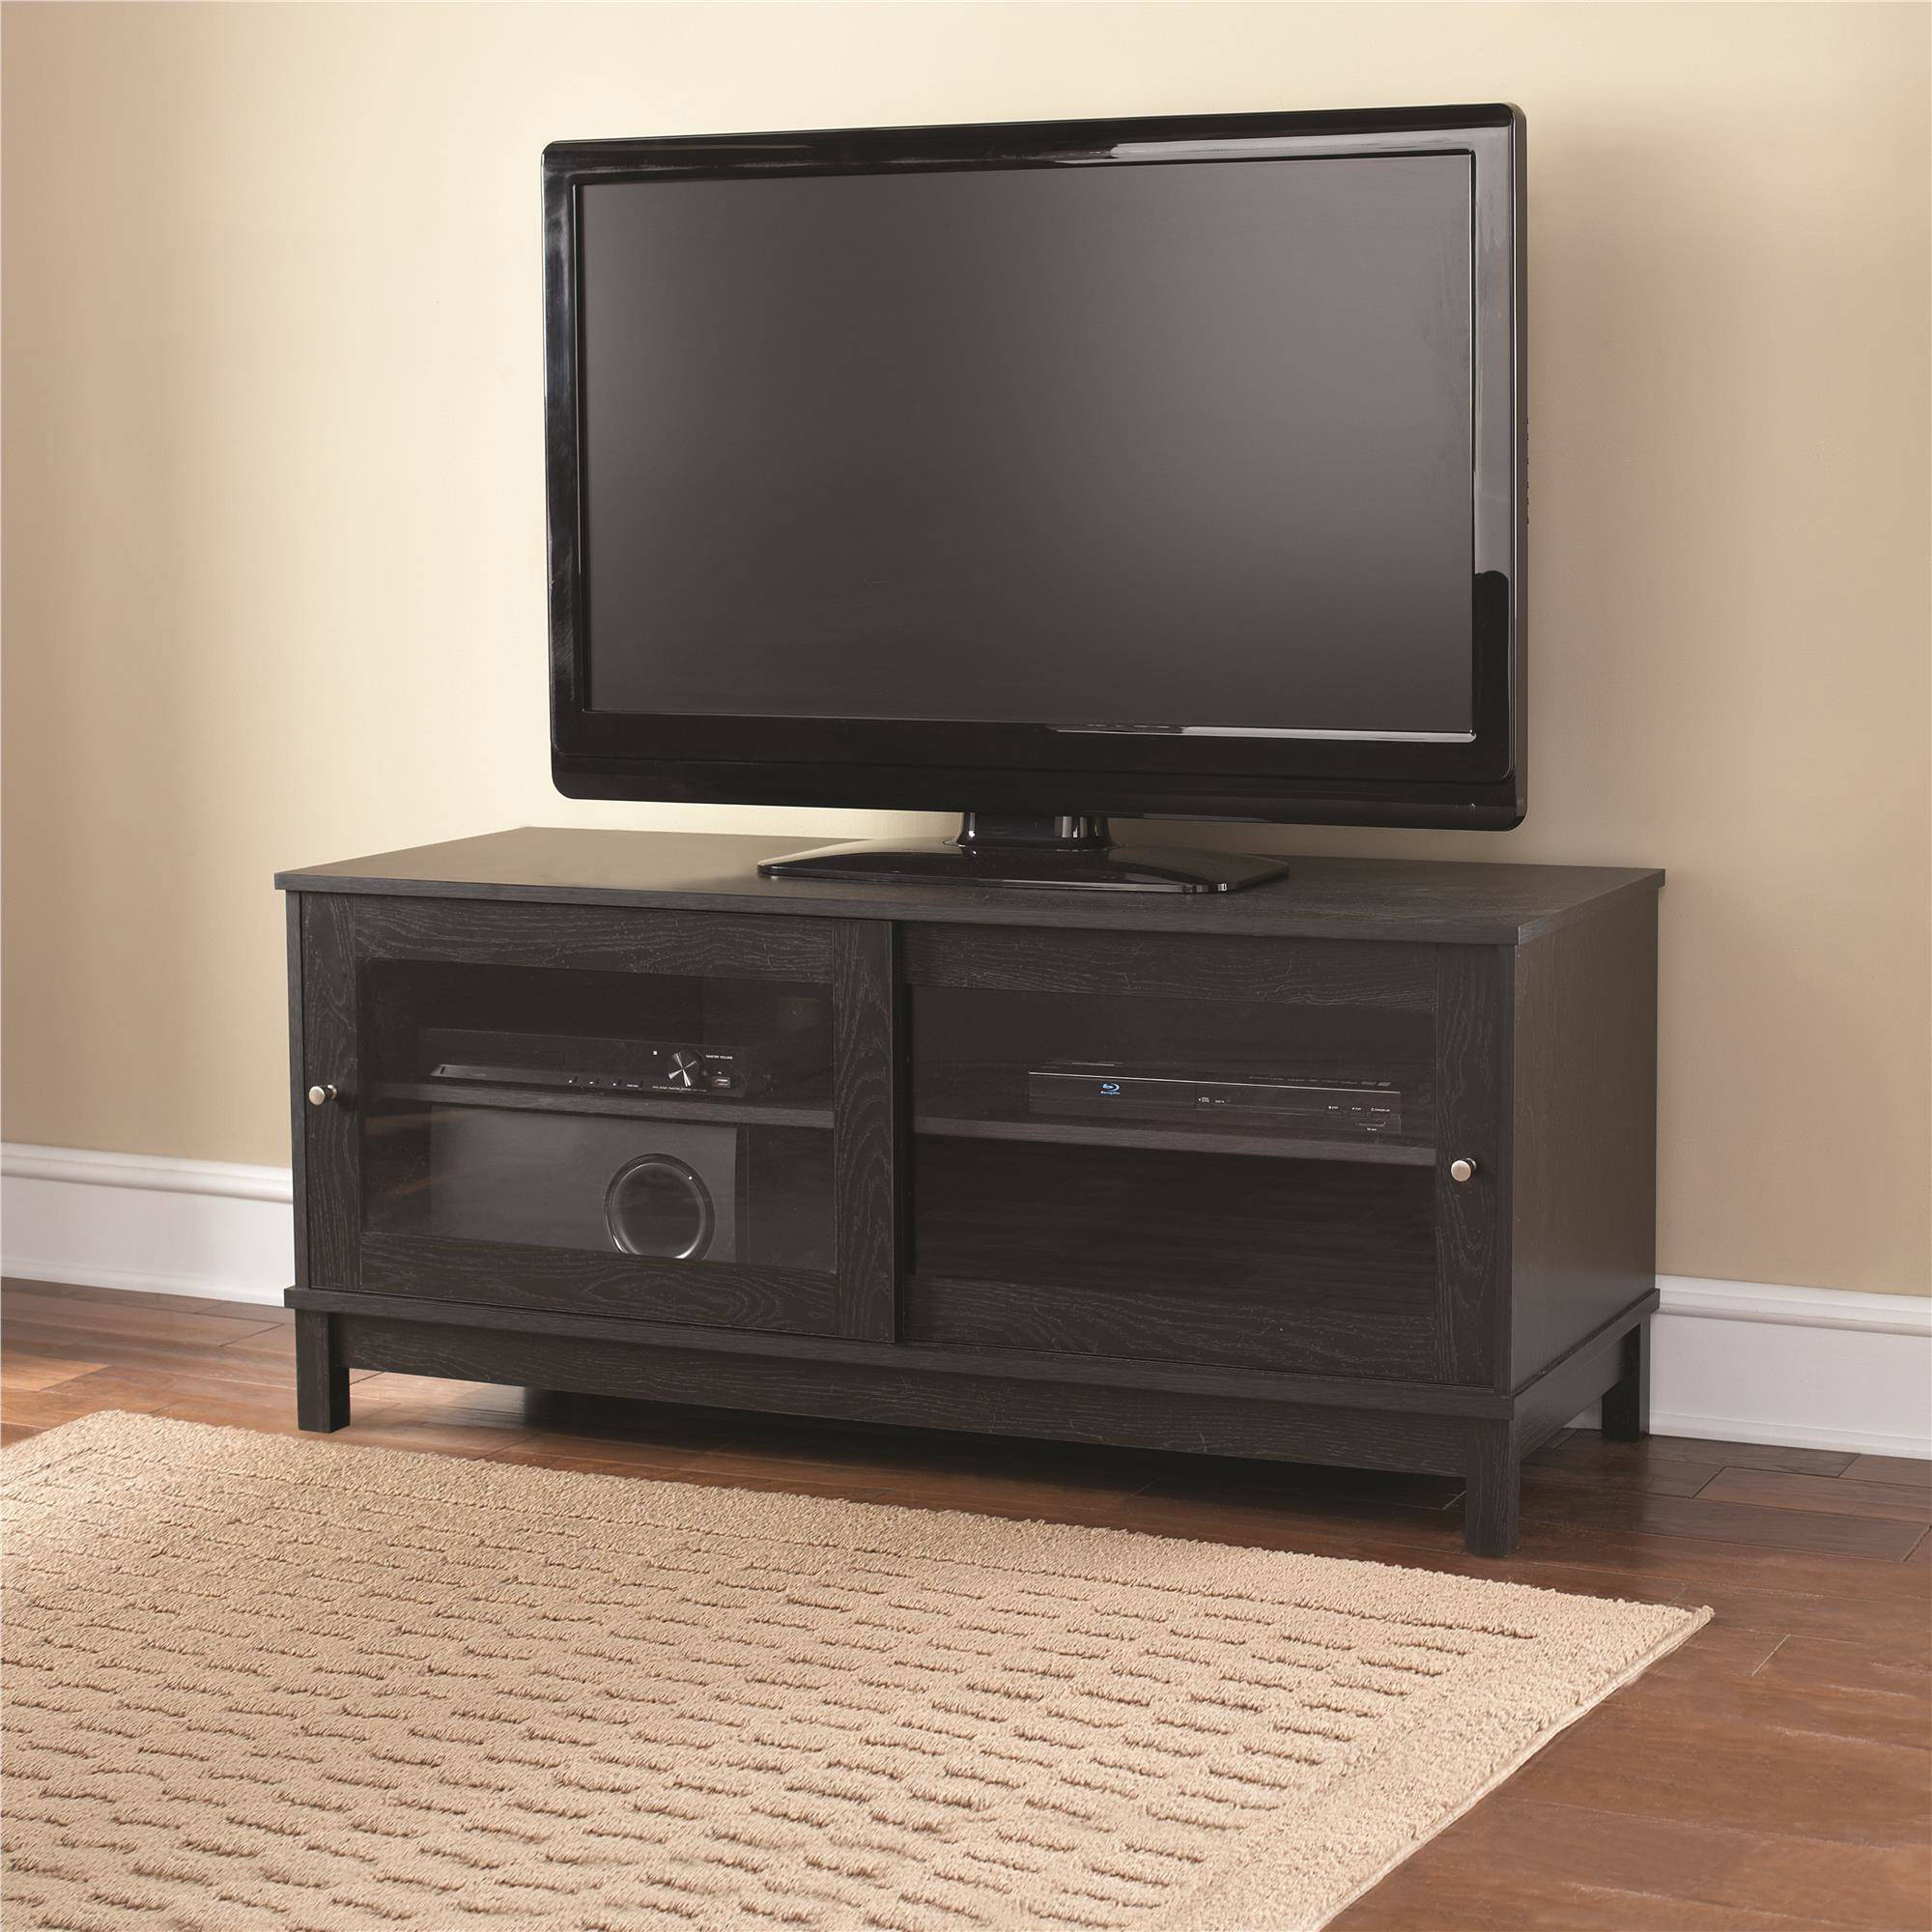 "Mainstays 55"" TV Stand with Sliding Glass Doors, Black Ebony Ash"